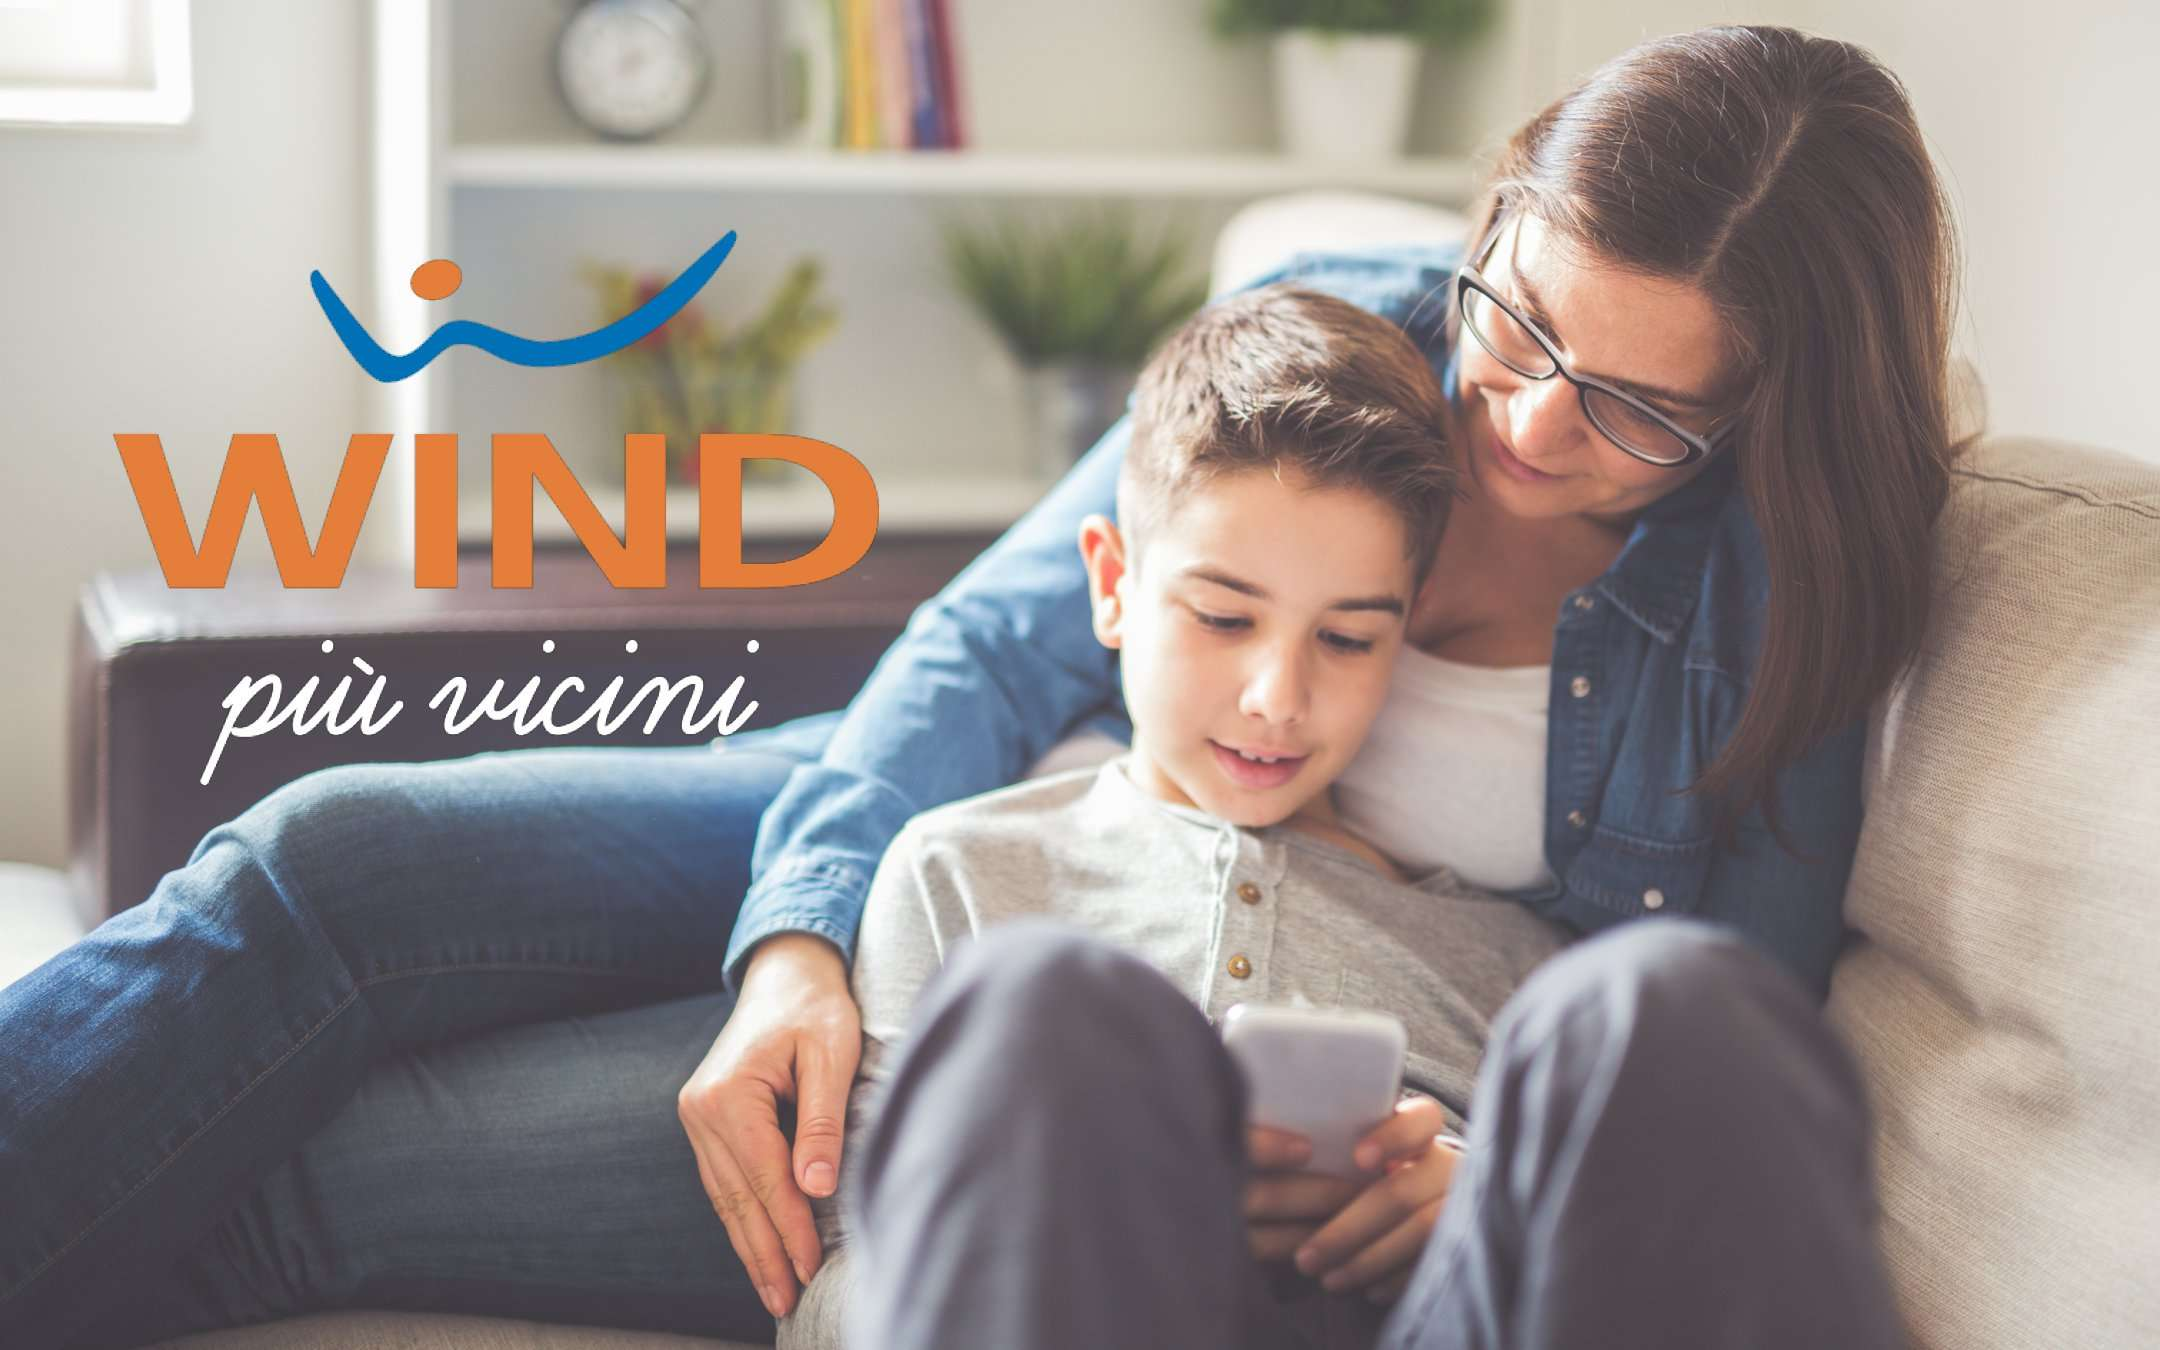 Wind All Inclusive Junior: online in sicurezza